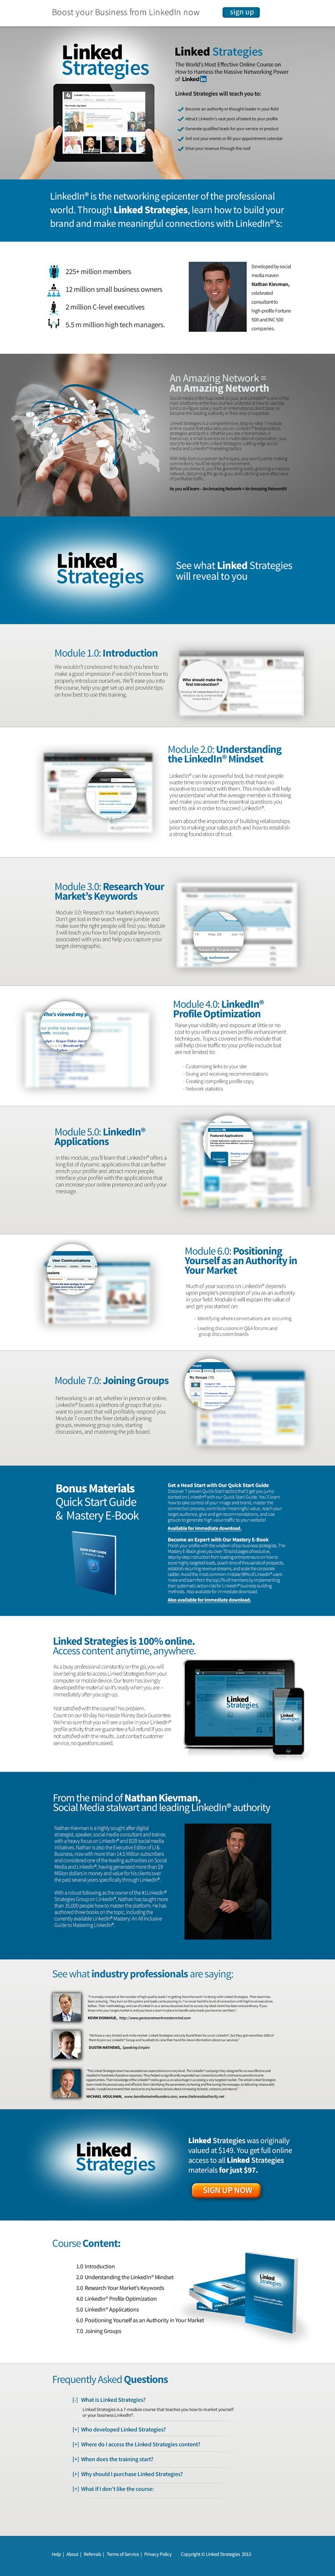 The Linked Strategies Group was founded by Nathan Kievman, CEO and has consulted with and provided LinkedIn® Strategies to Fortune 500 companies, mid to small businesses, INC 500 companies and many international thought leaders and speakers. Generating more than $9 Million of revenue for its clients over the past two years through LinkedIn® Strategies. Property of LinkedStrategies®